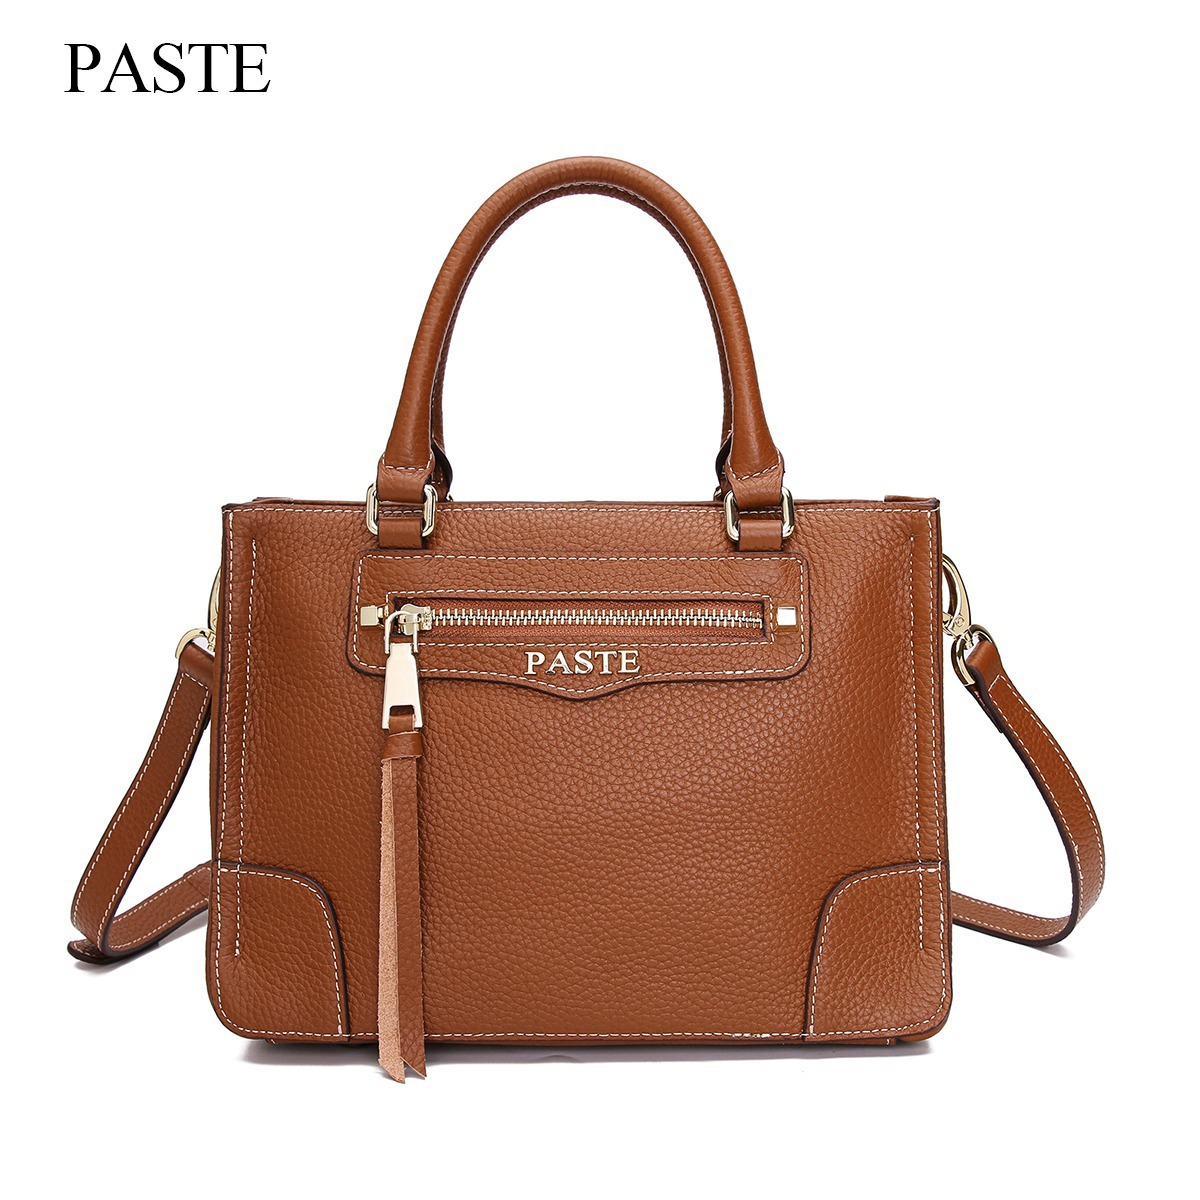 100% Cow Genuine Leather Handbags For Women Luxury Designer Tote Shoulder Bag Female&Ladies Messenger Bags Small Hand Bag PT36 women messenger bags leather clutch purse casual small shoulder bag for girl female tote handbags wristlet bolsa tote hand bag